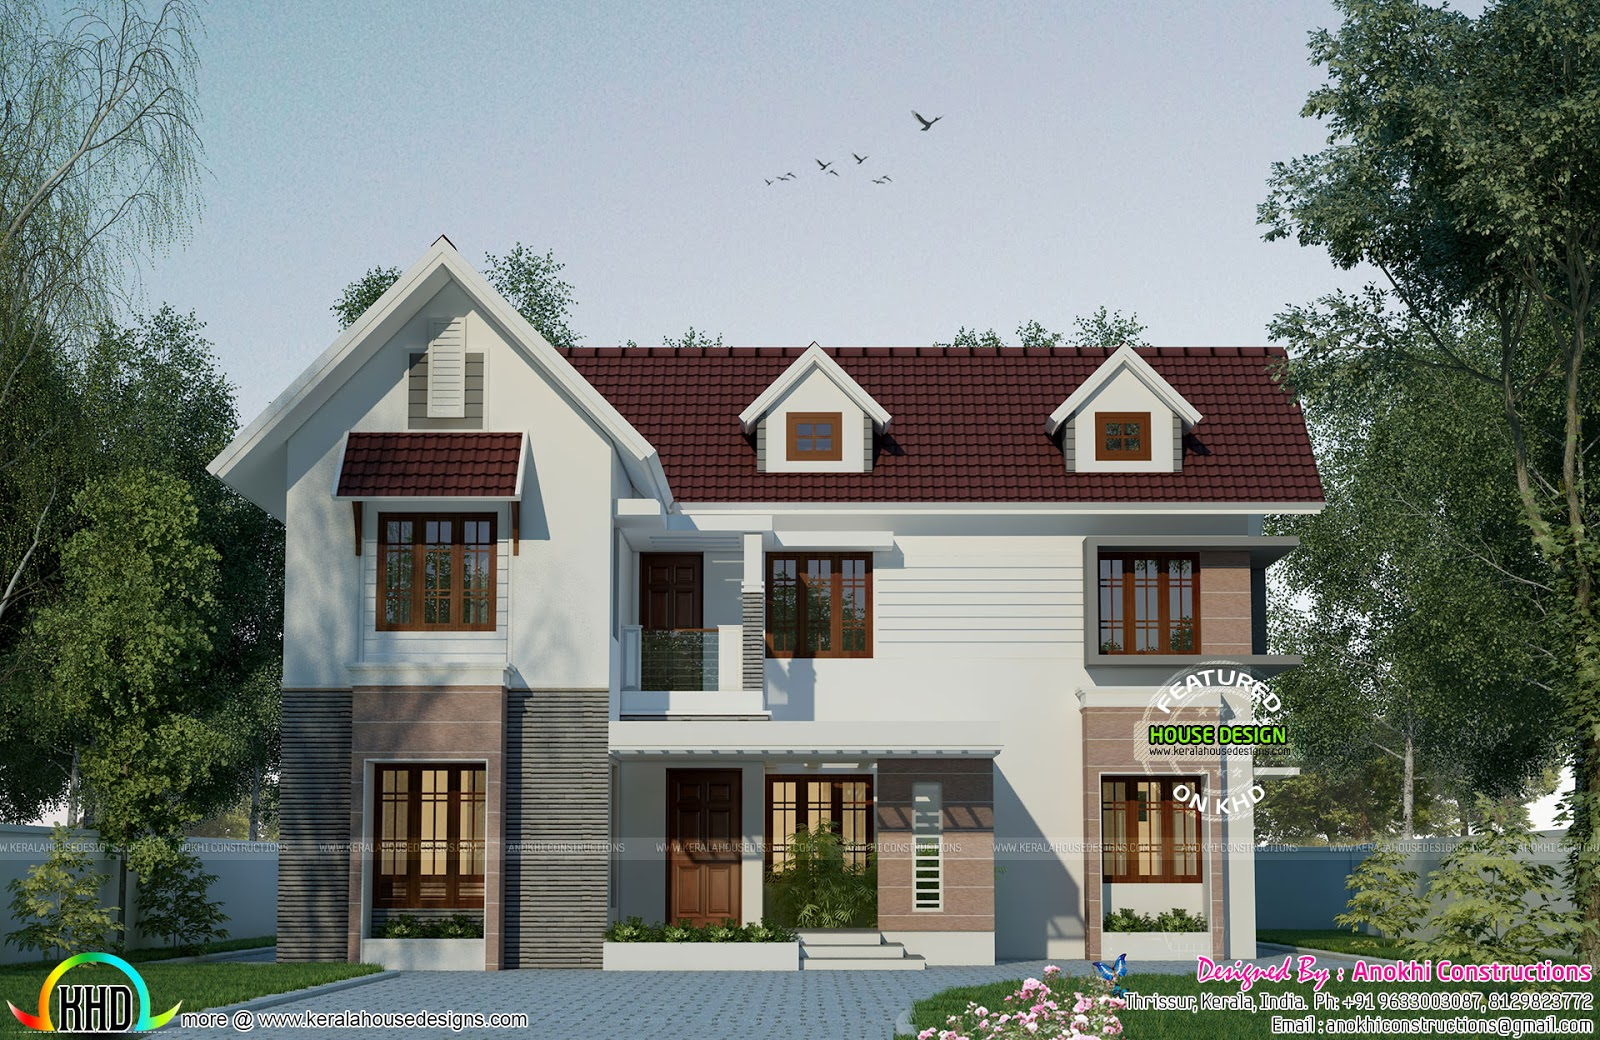 Sweet Home Design With 4 Bedrooms Kerala Home Design And Floor Plans